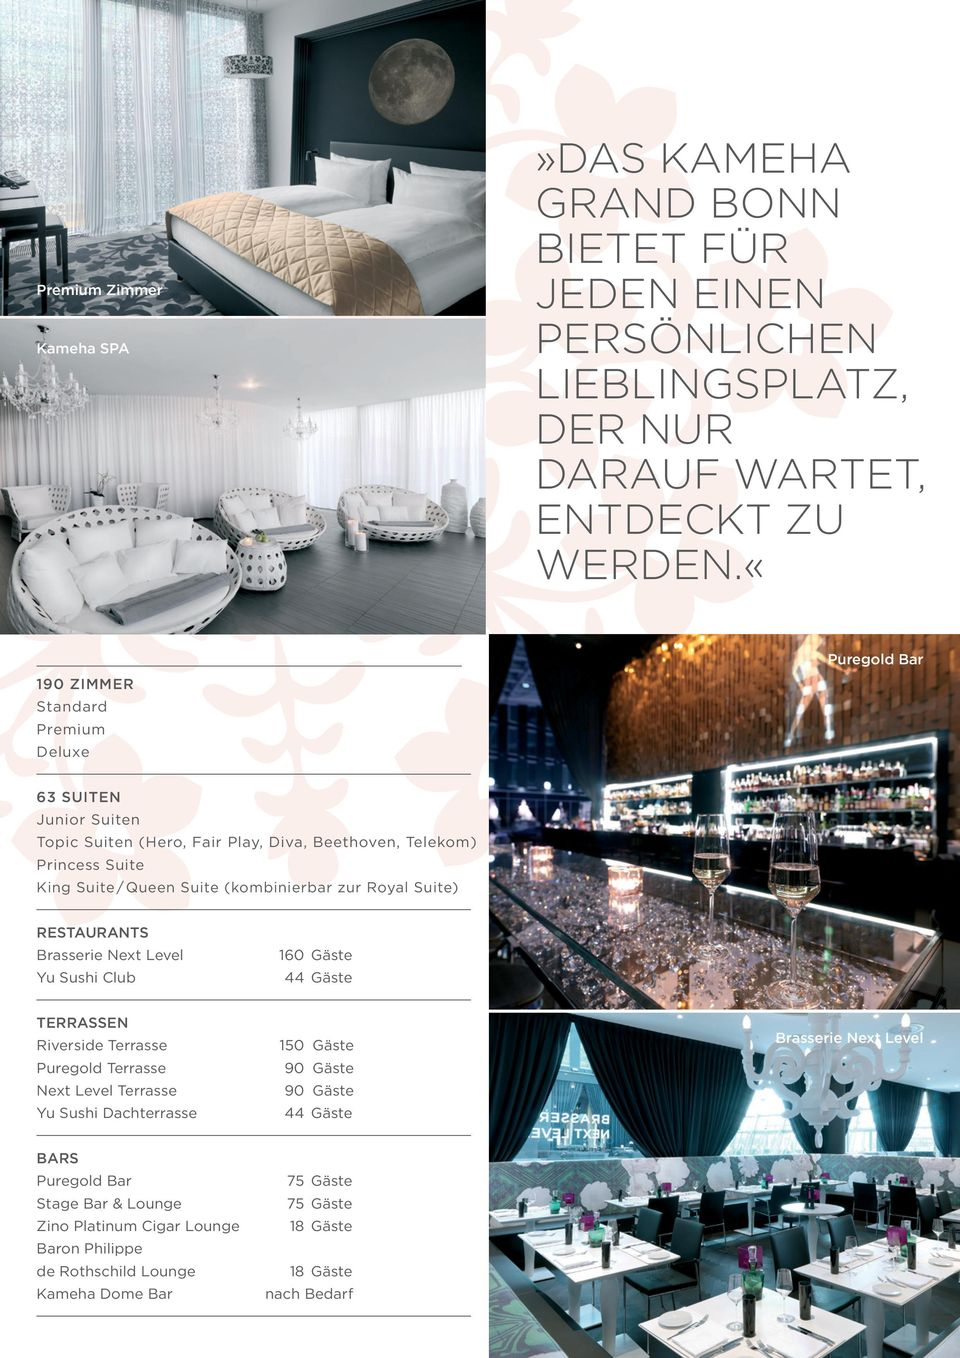 (kombinierbar zur Royal Suite) RESTAURANTS Brasserie Next Level Yu Sushi Club 160 Gäste 44 Gäste TERRASSEN Riverside Terrasse Puregold Terrasse Next Level Terrasse Yu Sushi